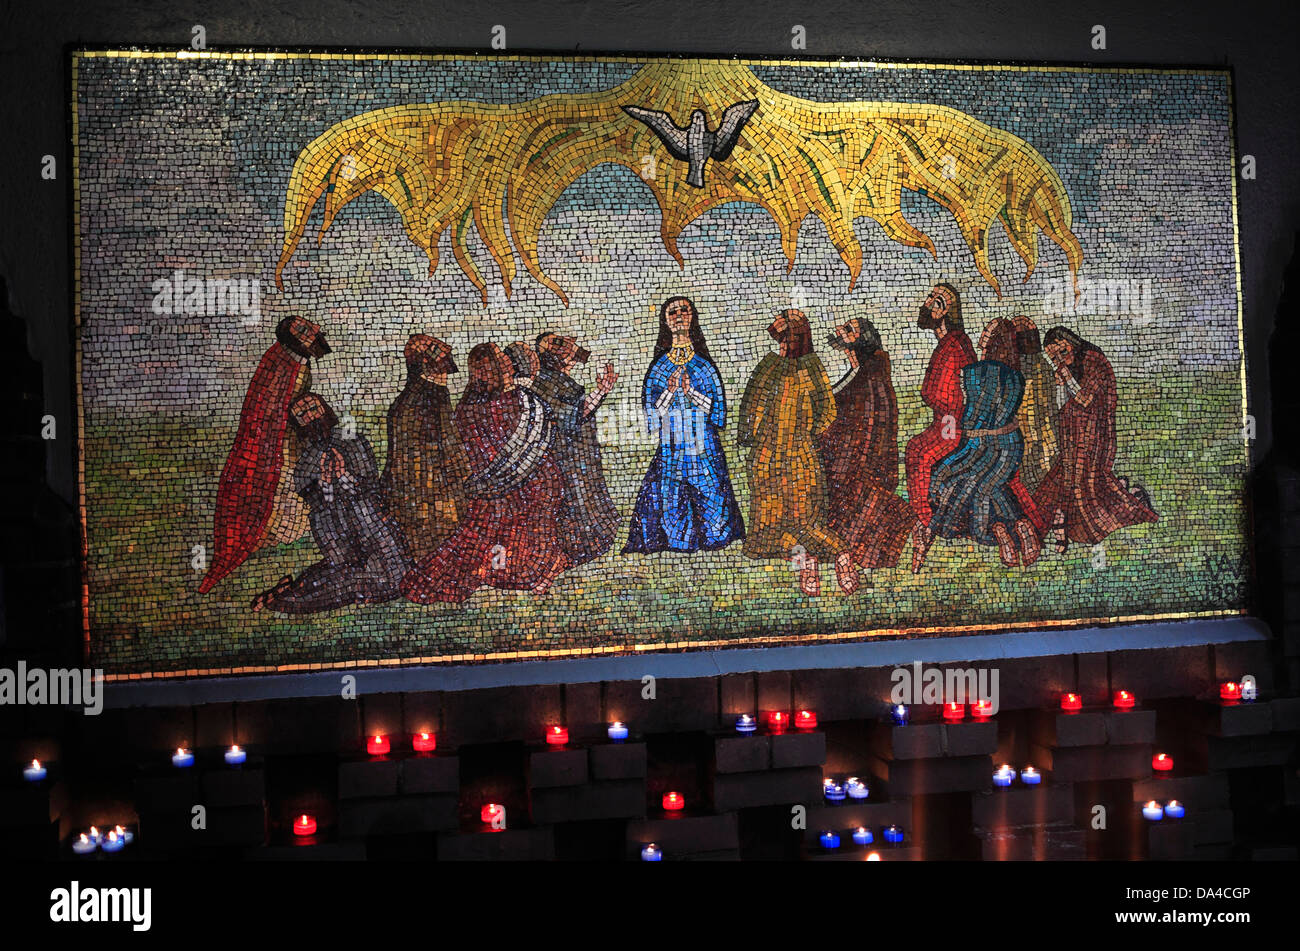 Mosaic in the Chapel of the Holy Spirit, Walsingham, by Jewish artist Anna Wyner showing the event of Pentecost. - Stock Image